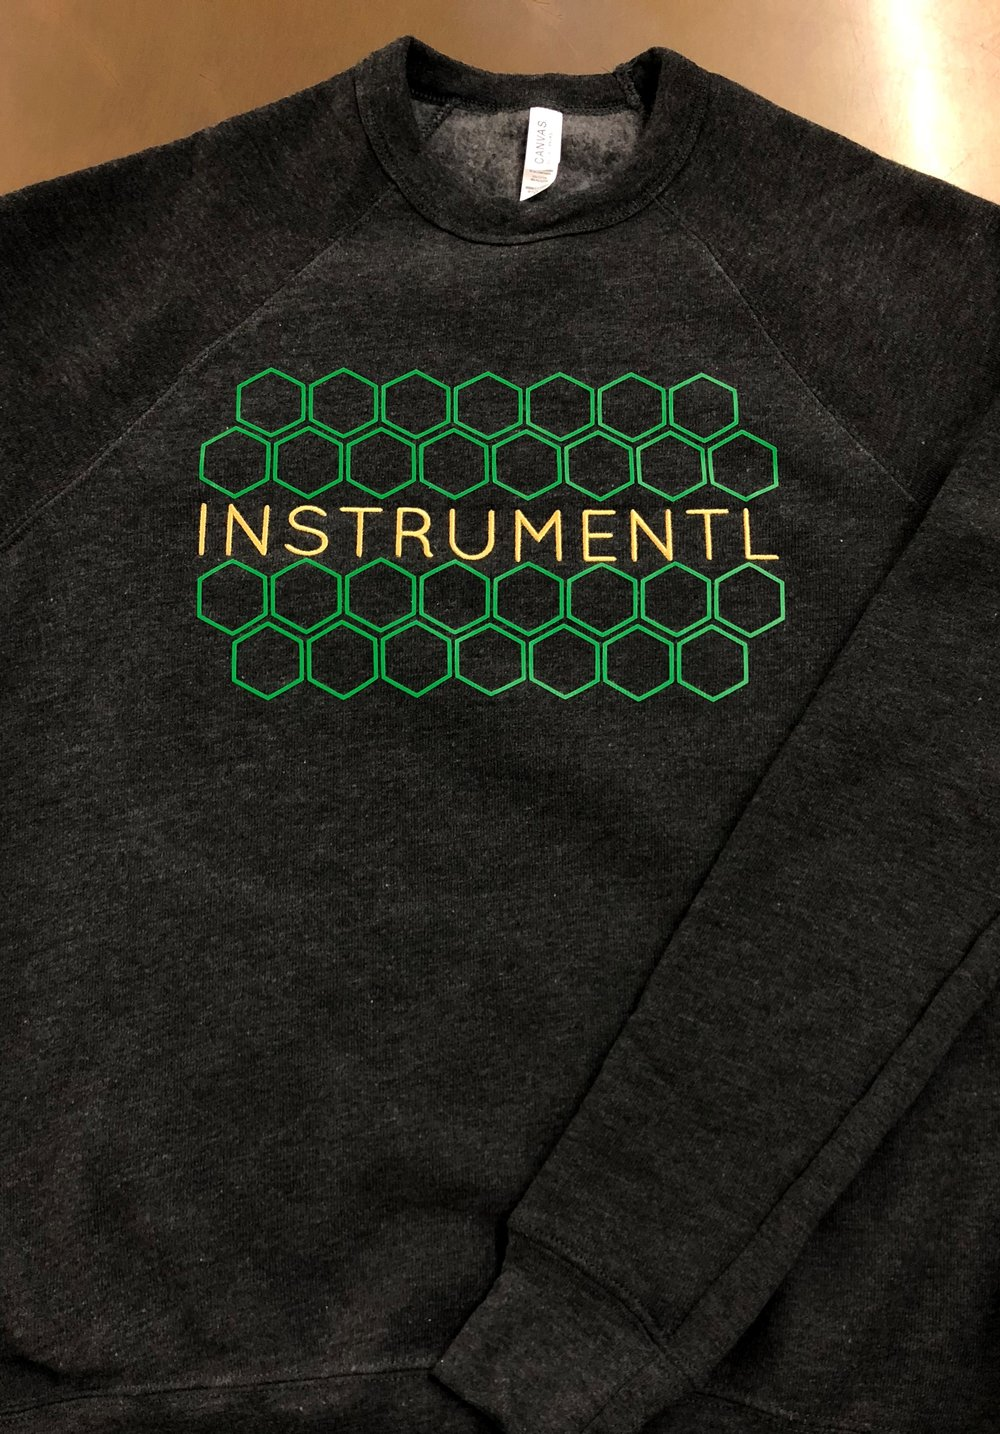 logounltd_laser_etching_embroidery_screen_printing_apparel_uniform_custom_tshirts_dye_sublimation_kirkland_bellevue_seattle_redmond_branded_merchandise_promotional_products_logo_unltd_amazon_aws_patches_ (3).jpg